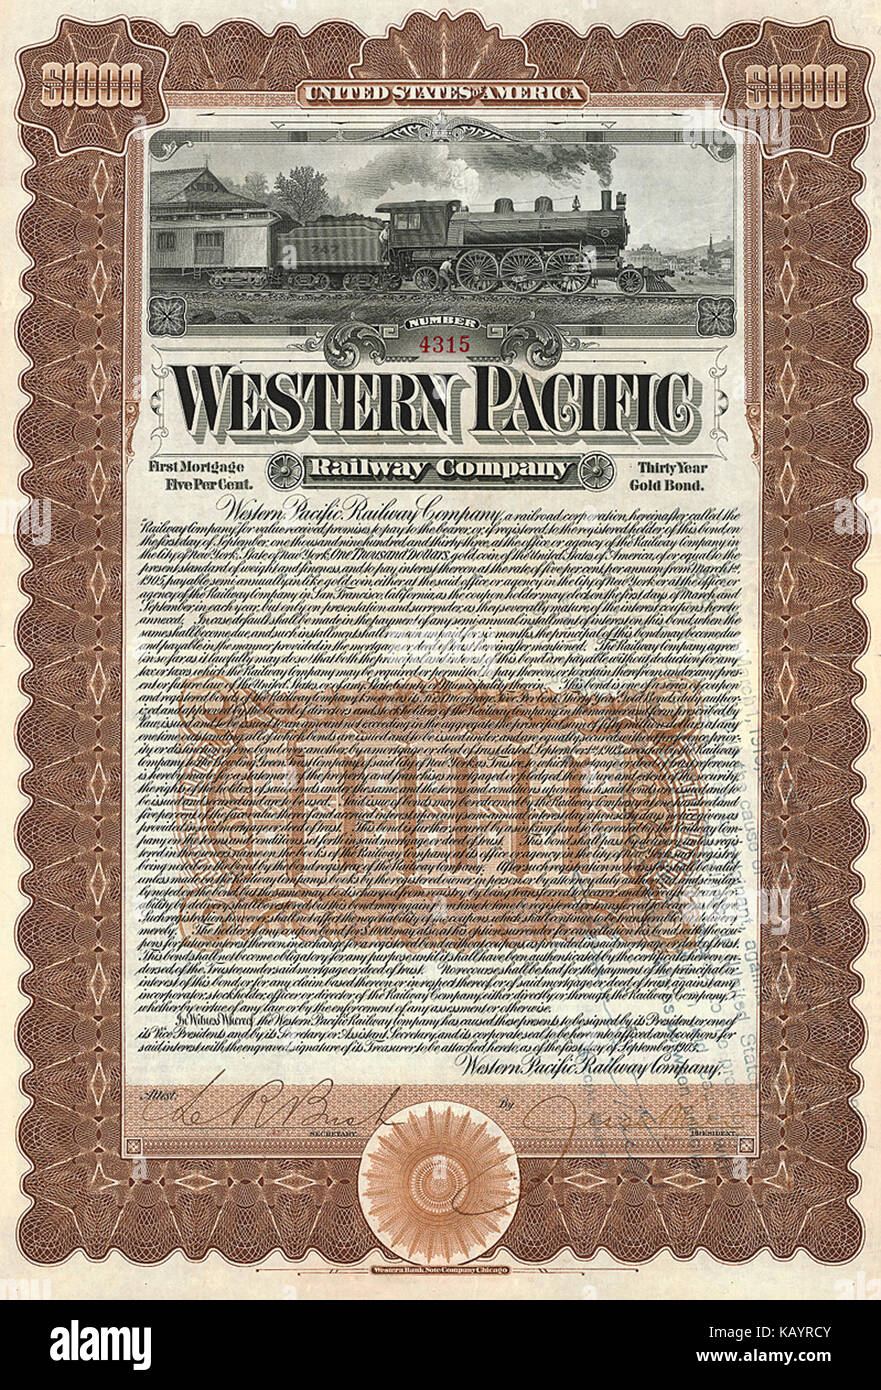 Western Pacific RW 1903 - Stock Image